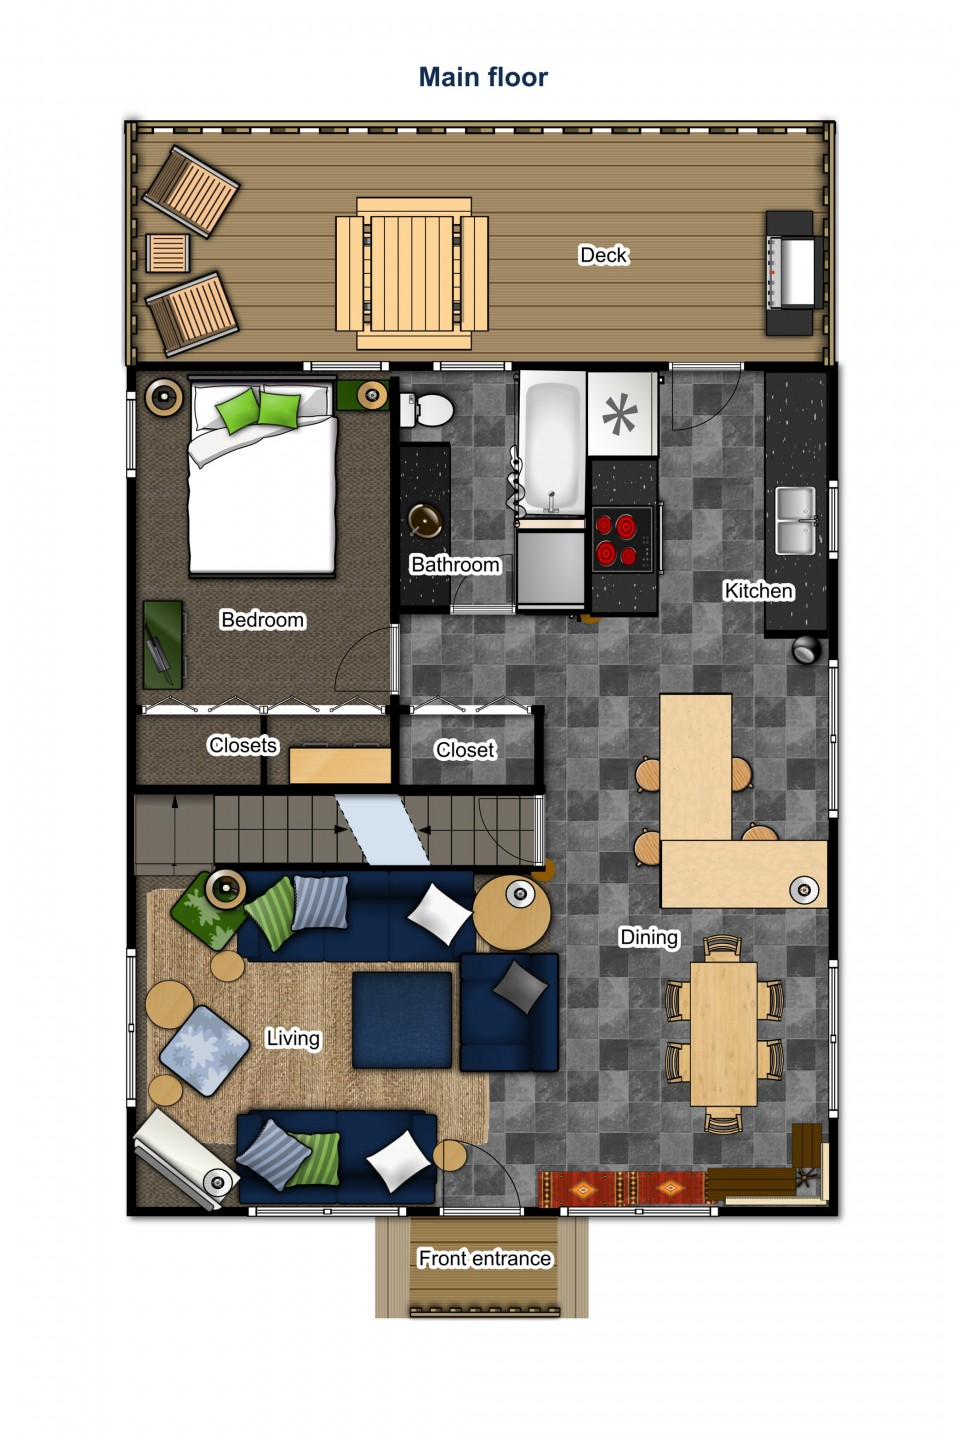 Main floor — front entry, living room, dining, kitchen, bedroom, bathroom and deck